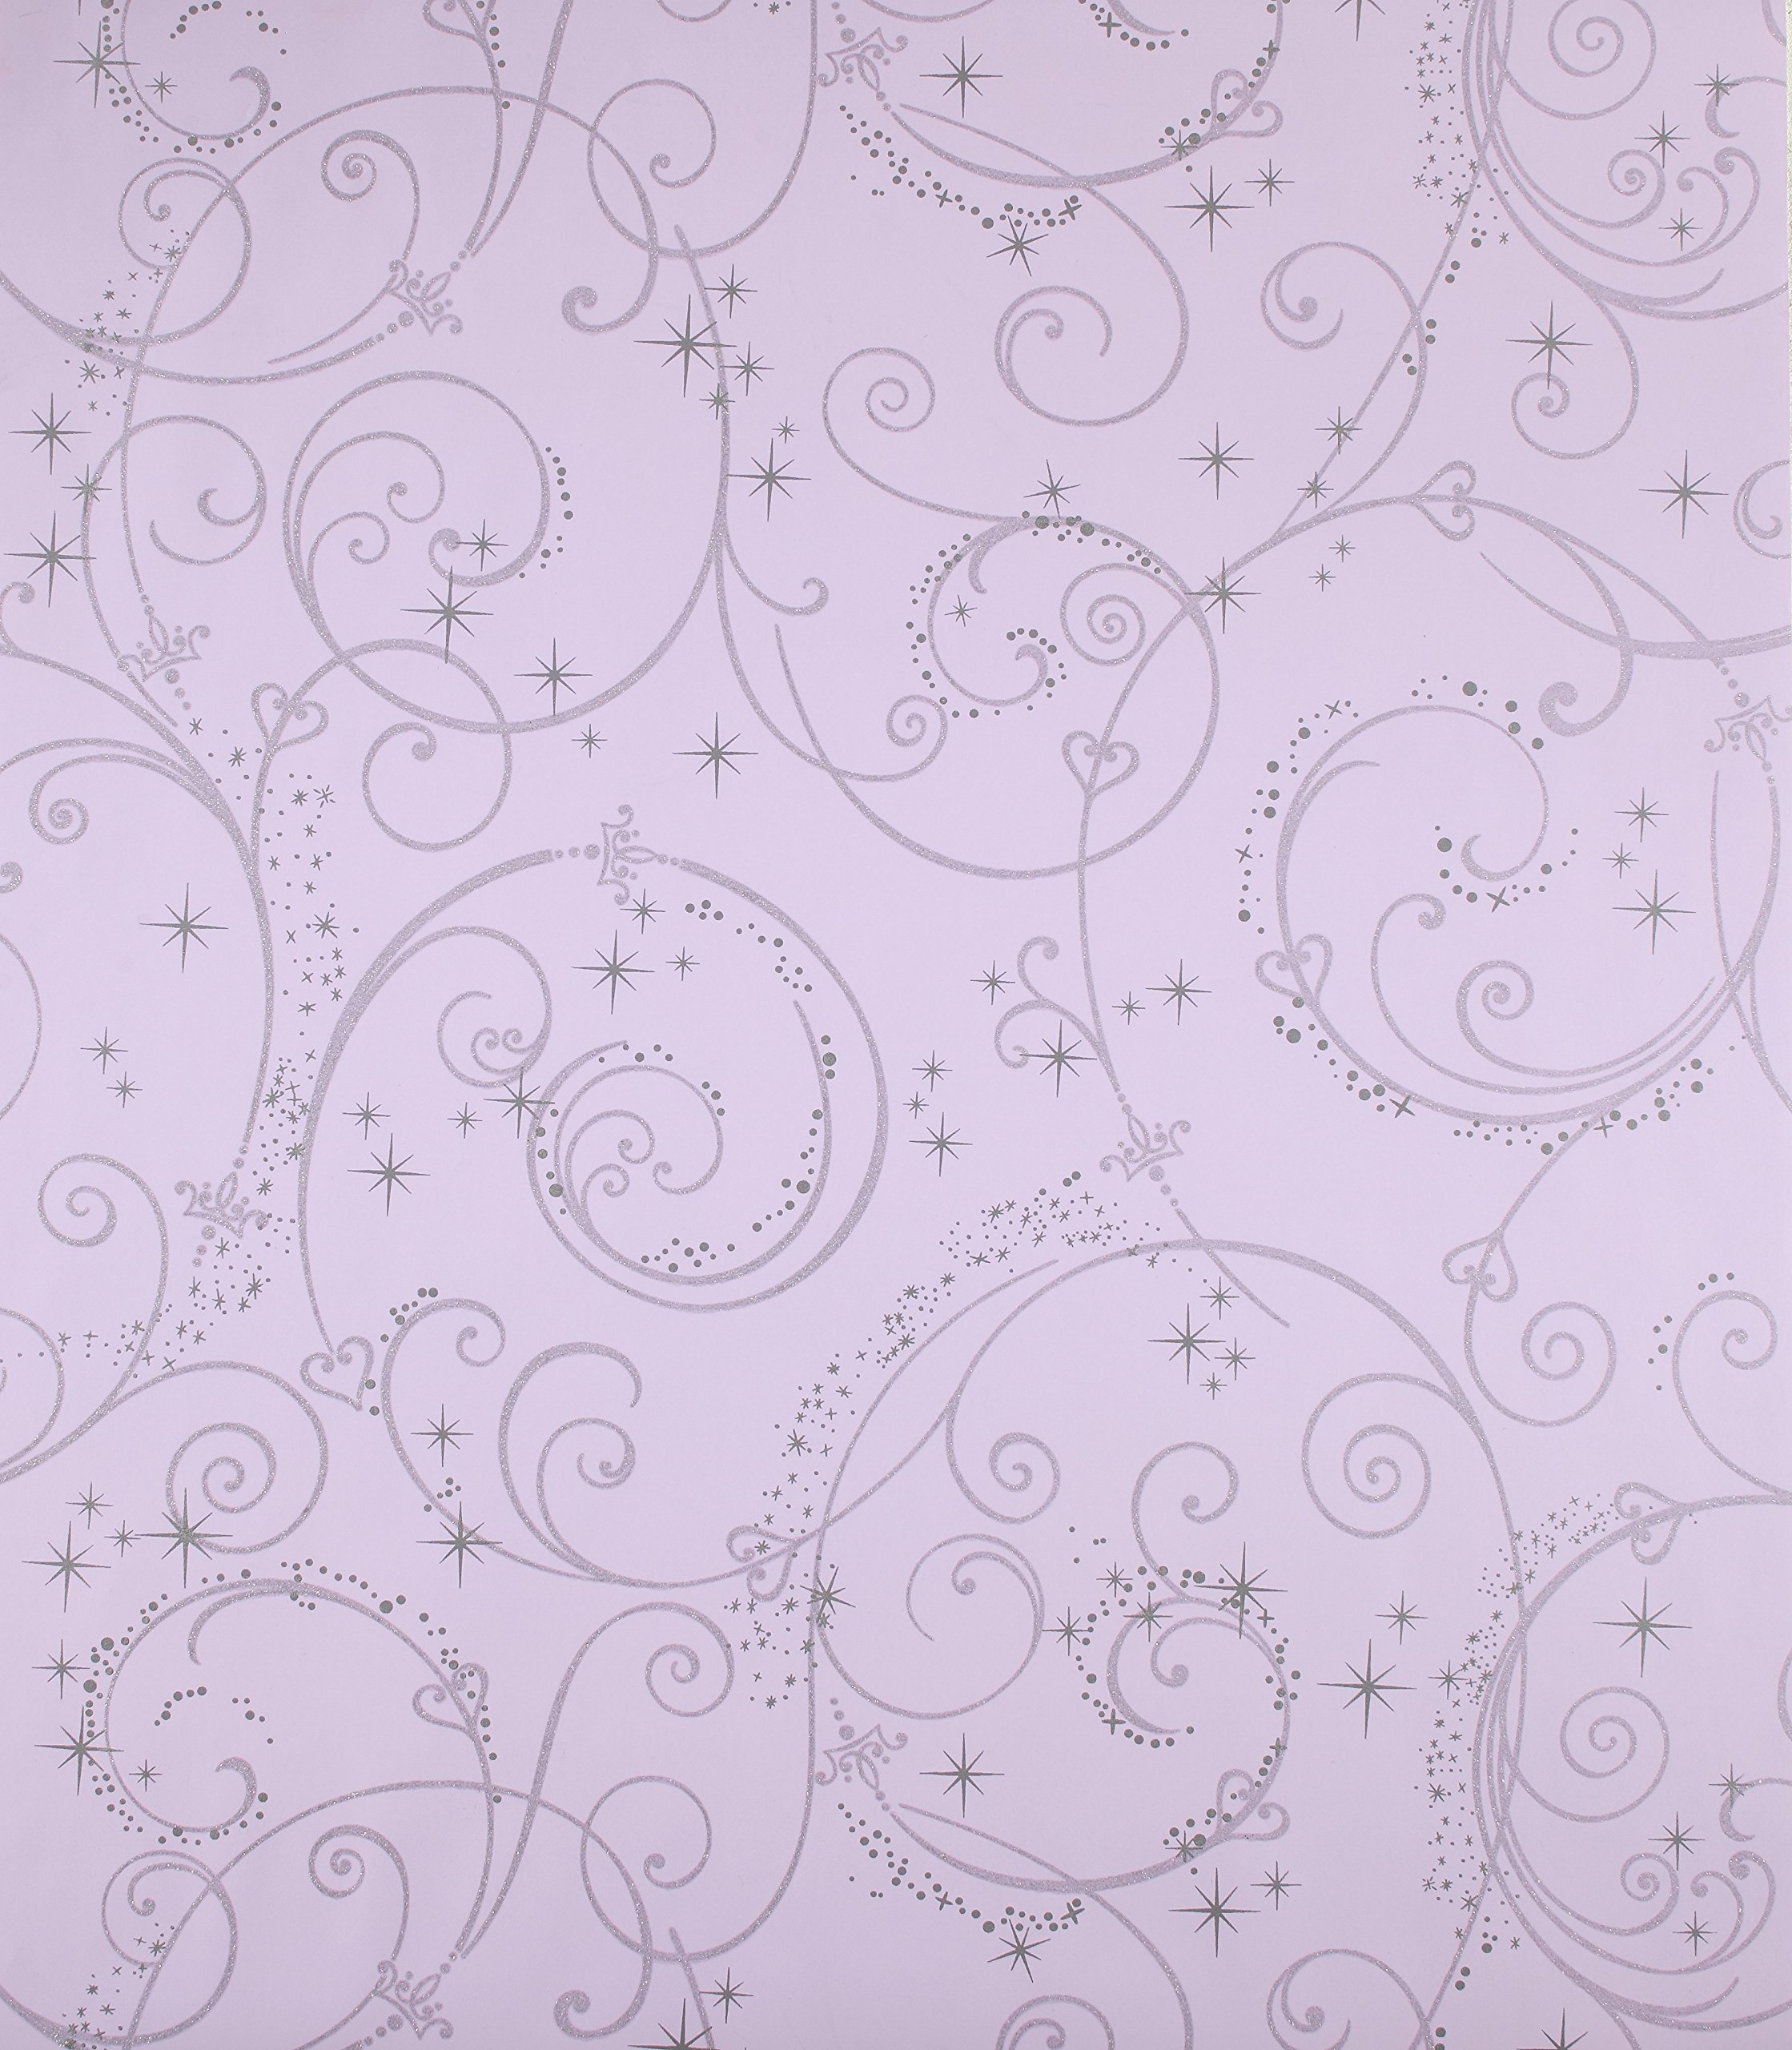 York Wallcoverings Disney Kids DK5965 Perfect Princess Scroll Wallpaper, Purple with Glitter by York Wallcoverings